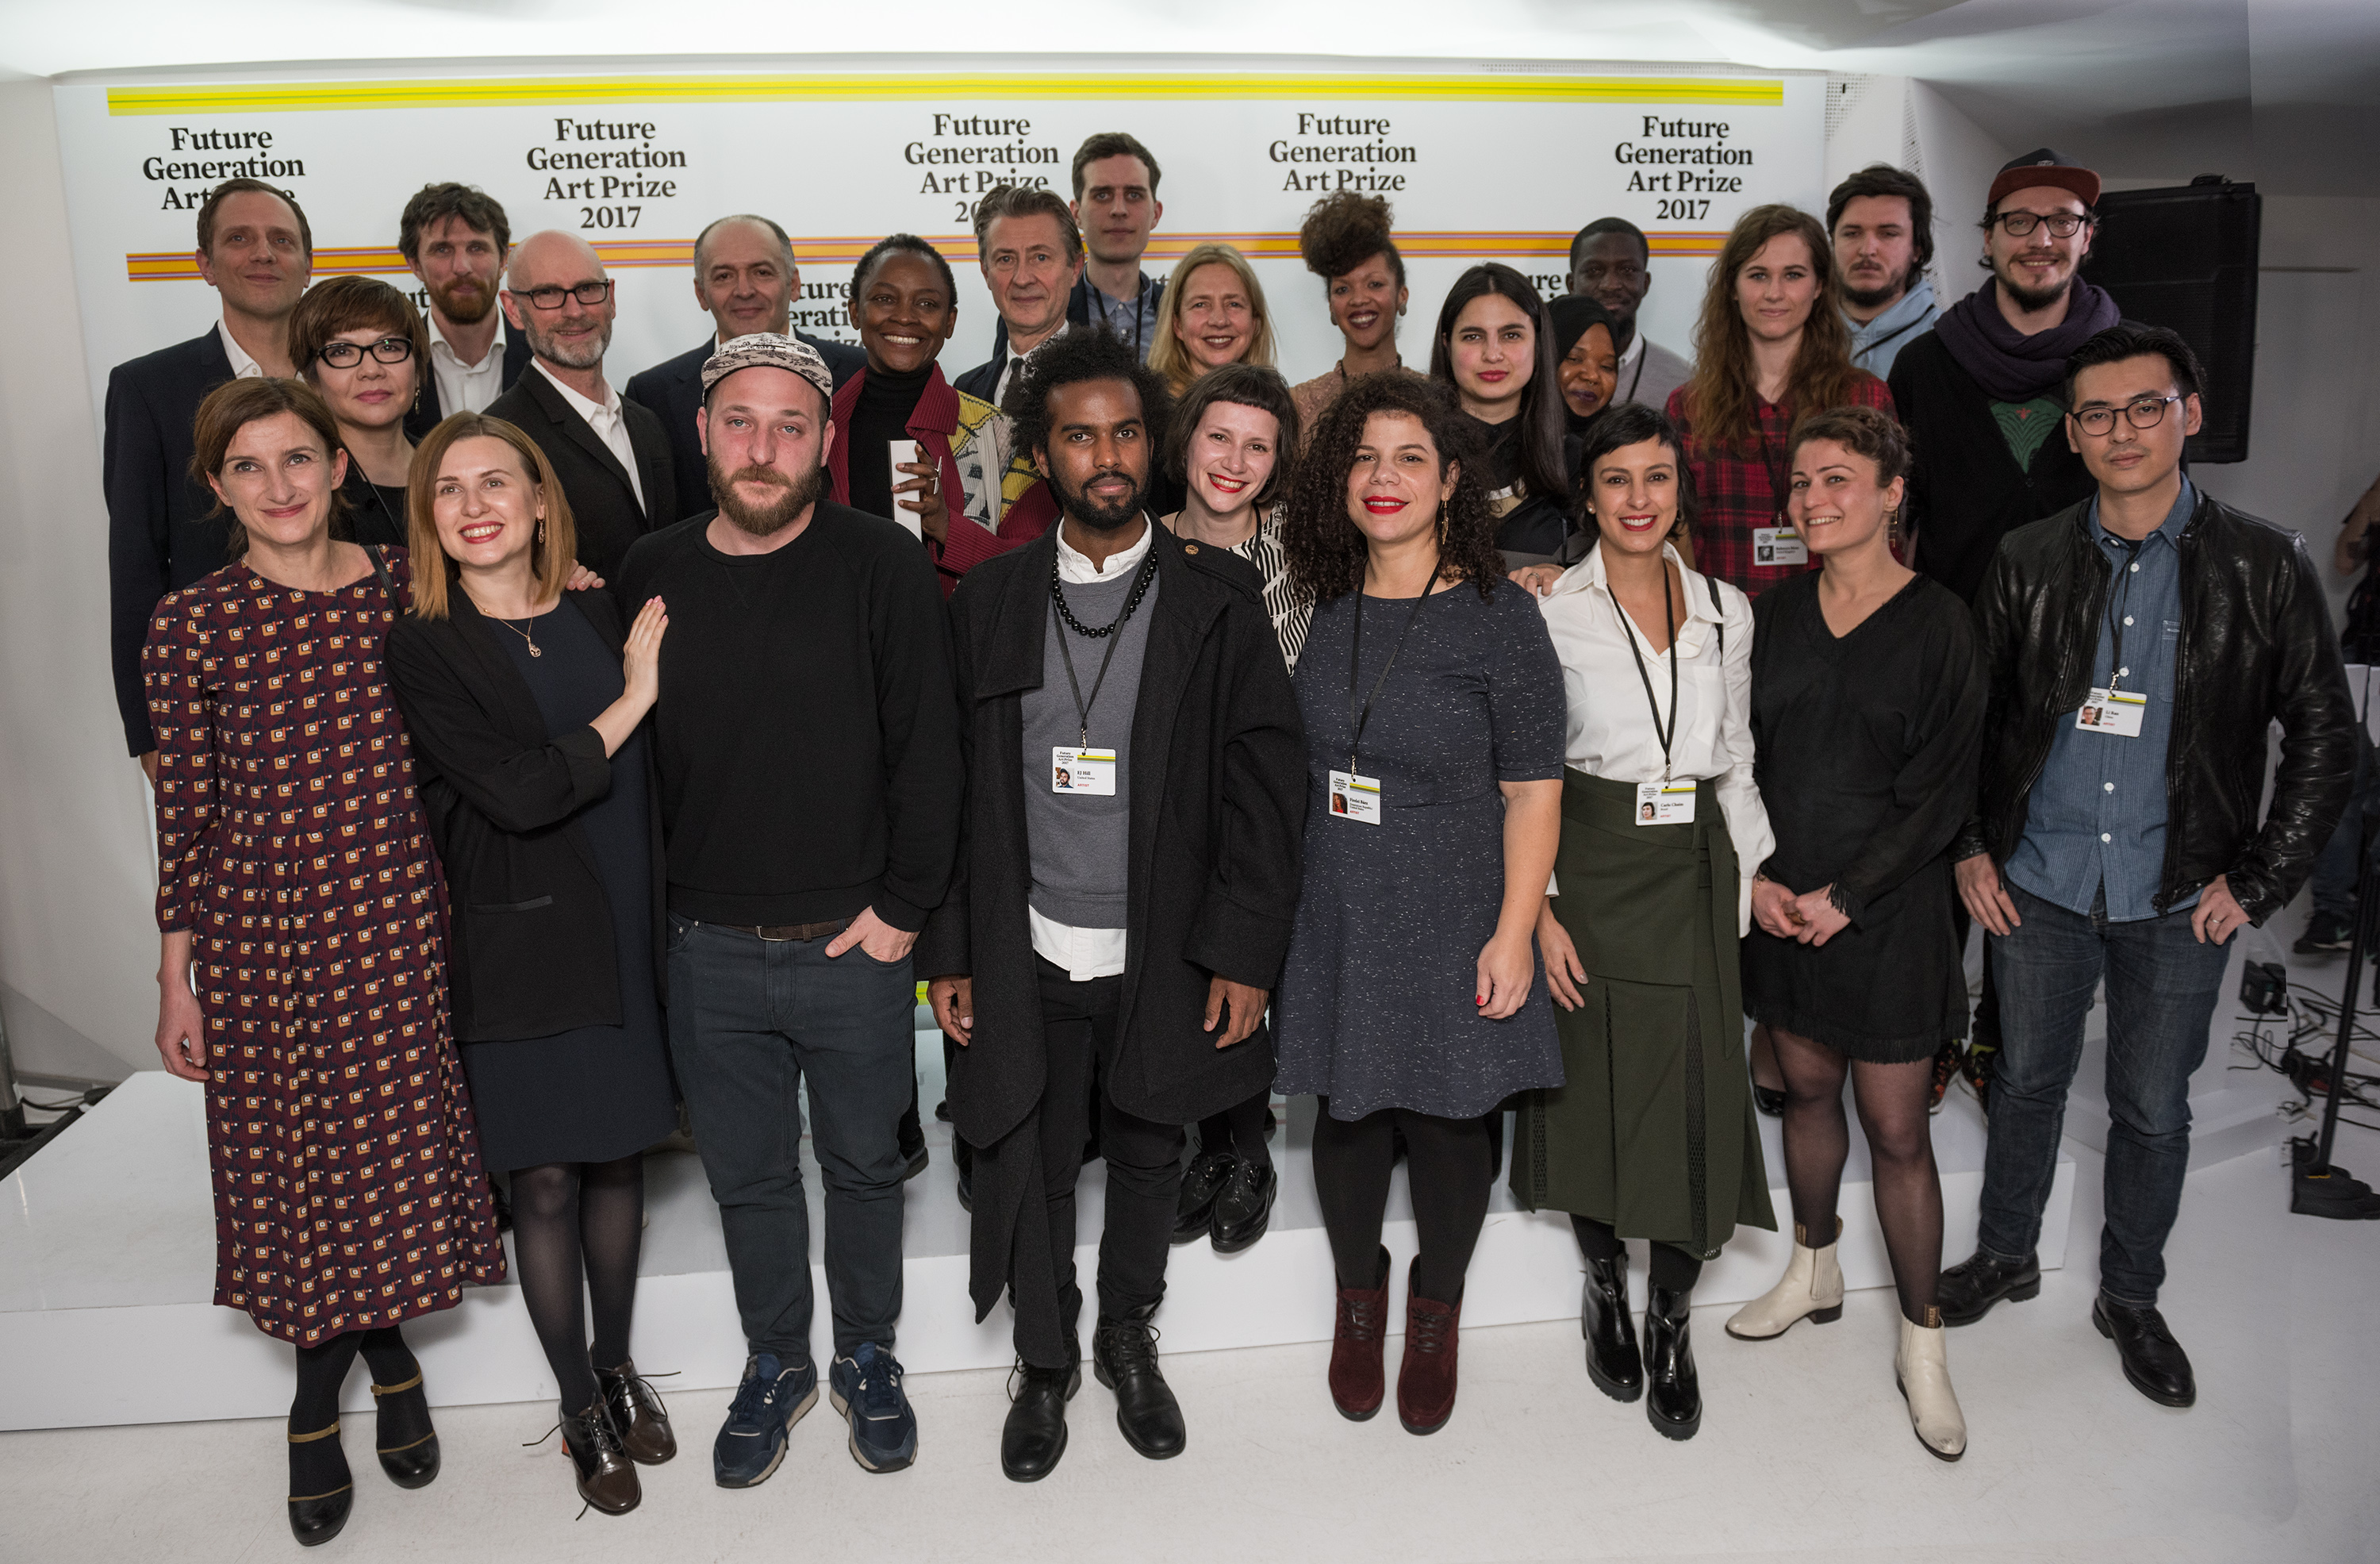 21 shortlisted artists for the Future Generation Art Prize 2017 with international jury members